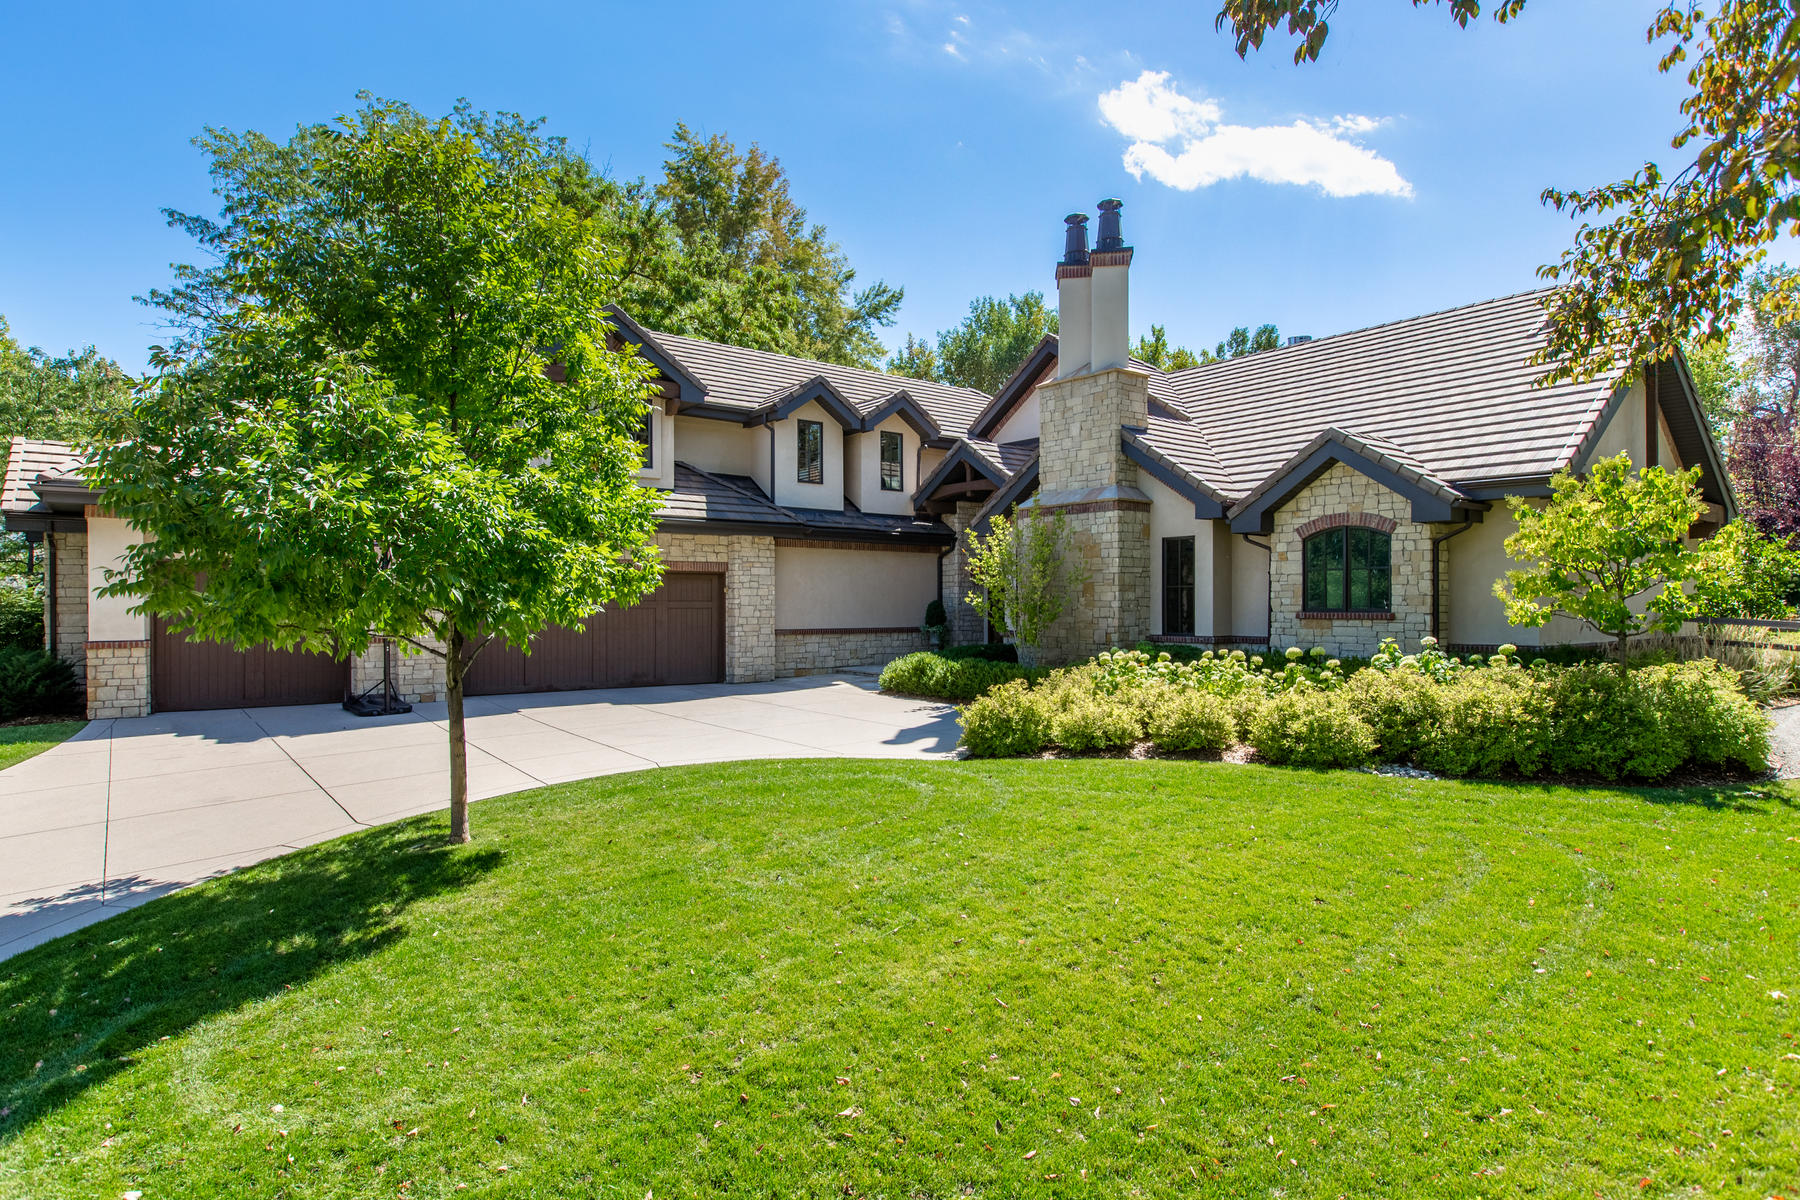 Property por un Venta en Set on a private and perfectly landscaped southern lot! 18 Cottonwood Ln Greenwood Village, Colorado 80121 Estados Unidos